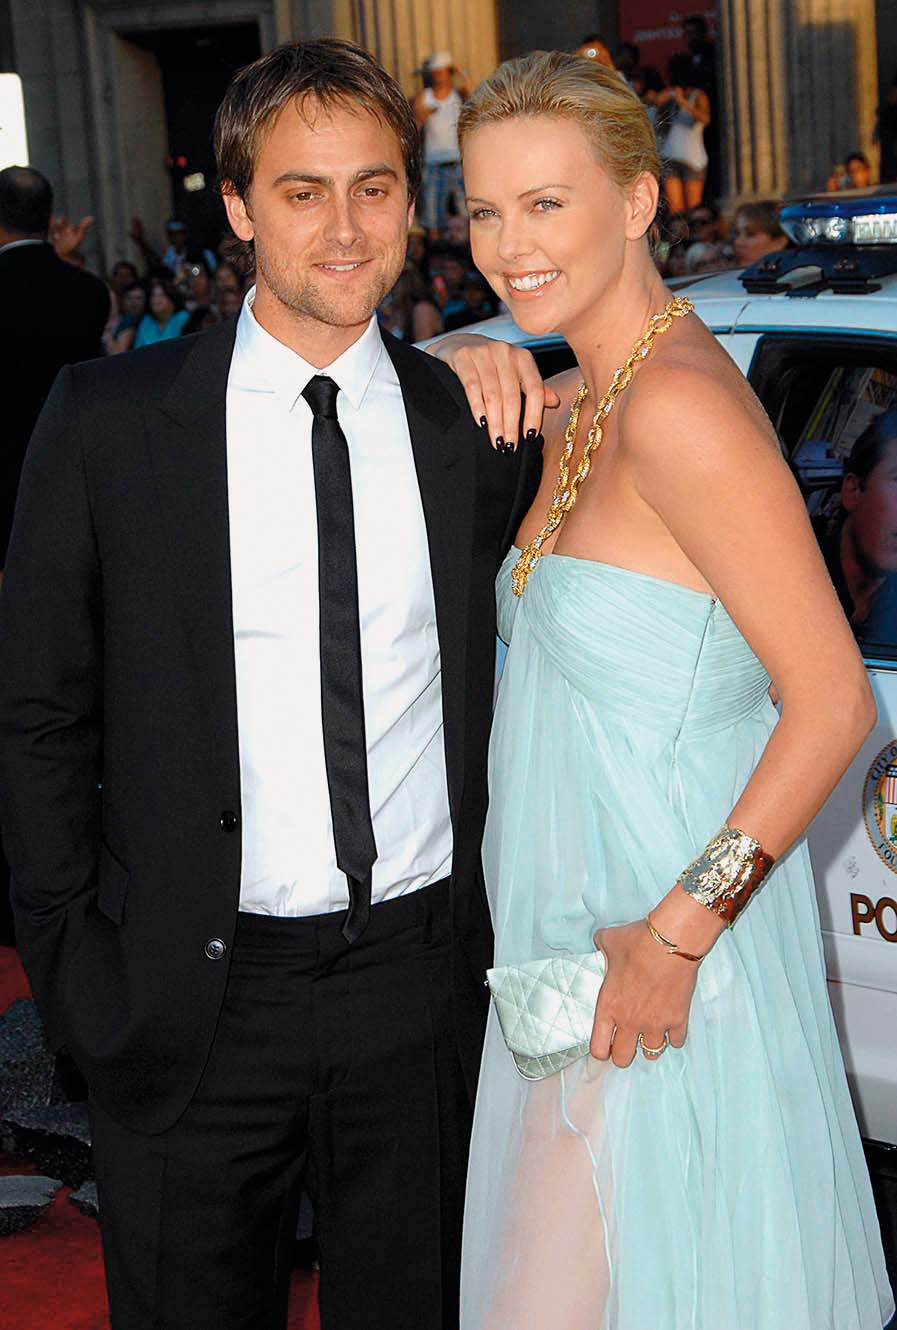 Charlize Theron, Stuart Townsend at arrivals for HANCOCK  Premiere, Grauman's Chinese Theatre, Hollywood, CA, June 30, 2008., Image: 96989826, License: Rights-managed, Restrictions: , Model Release: no, Credit line: David Longendyke / Everett / Profimedia